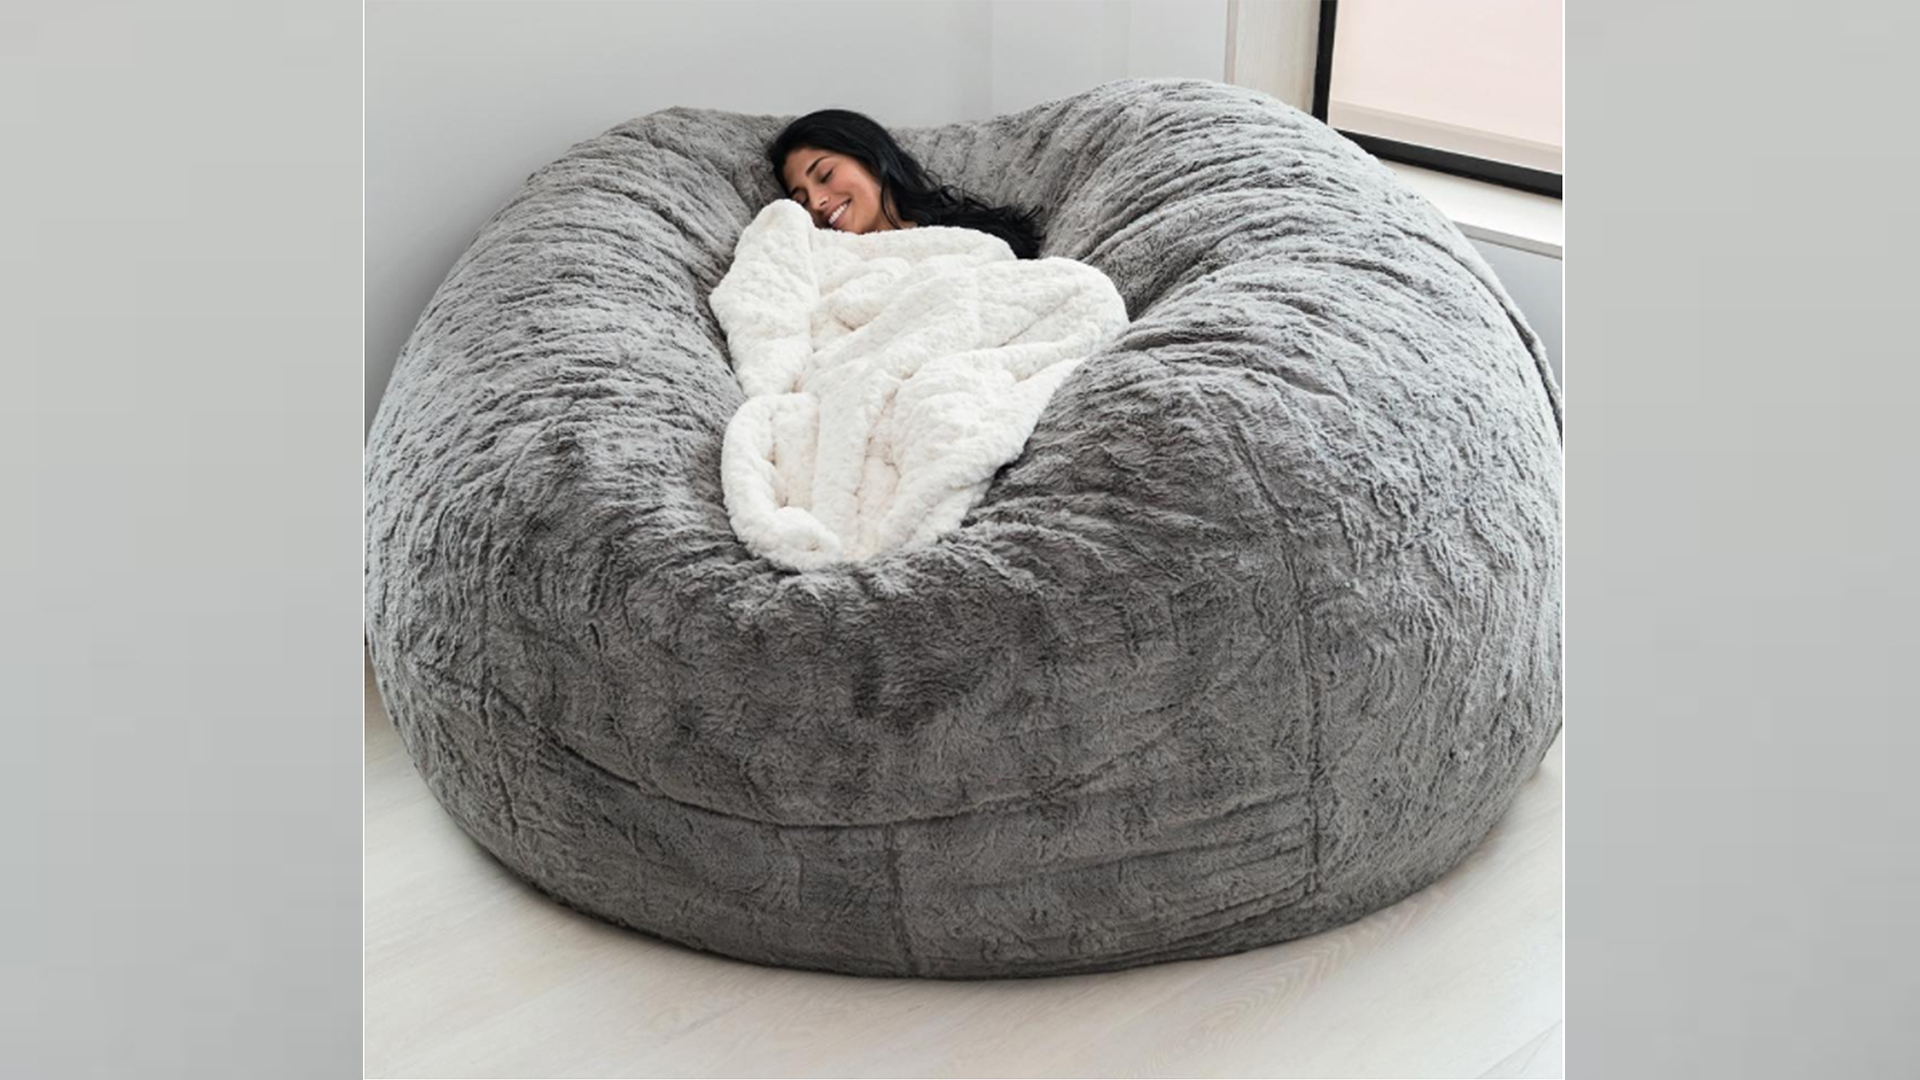 Love Sac Bean Bag Chair The Lovesac Pillow And Other Comfy Chairs To Try This Winter